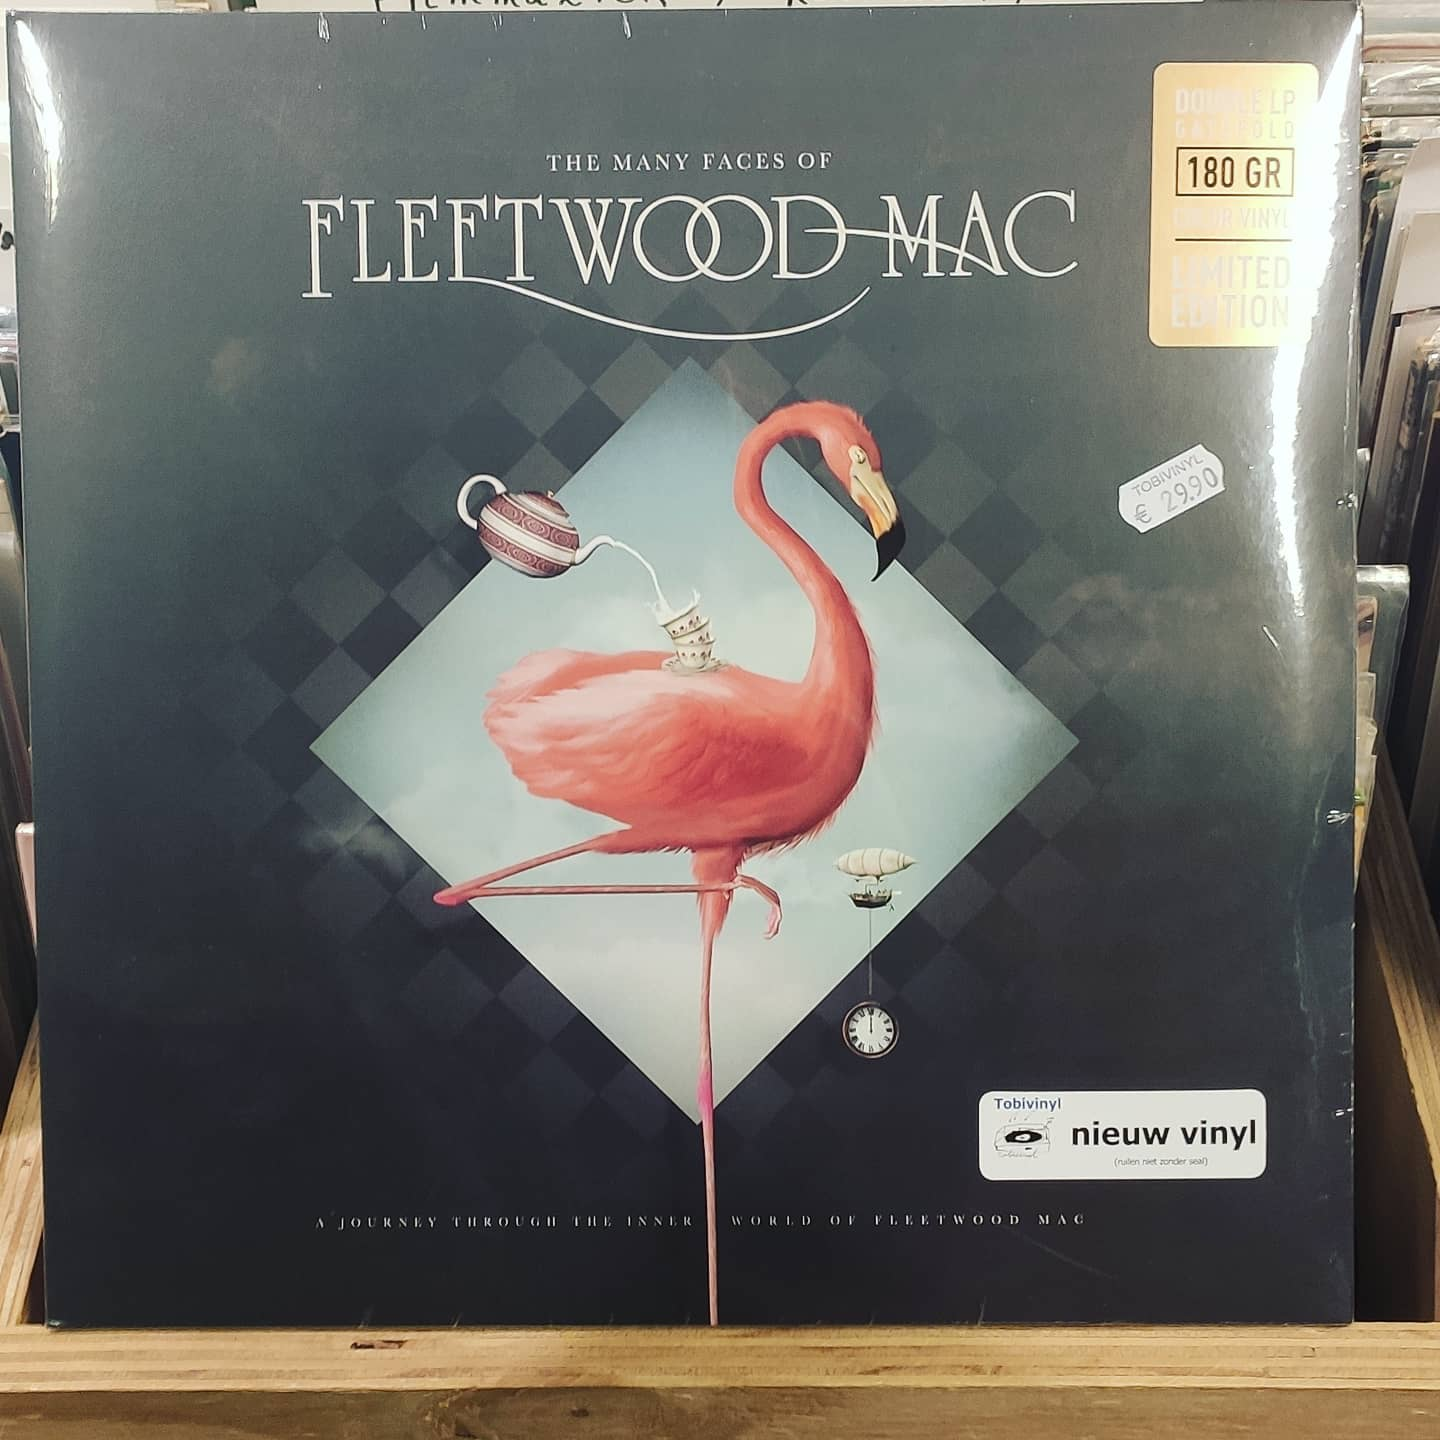 Product image Fleetwood Mac – The Many Faces of Fleetwood Mac – Dubbel LP – Nieuw